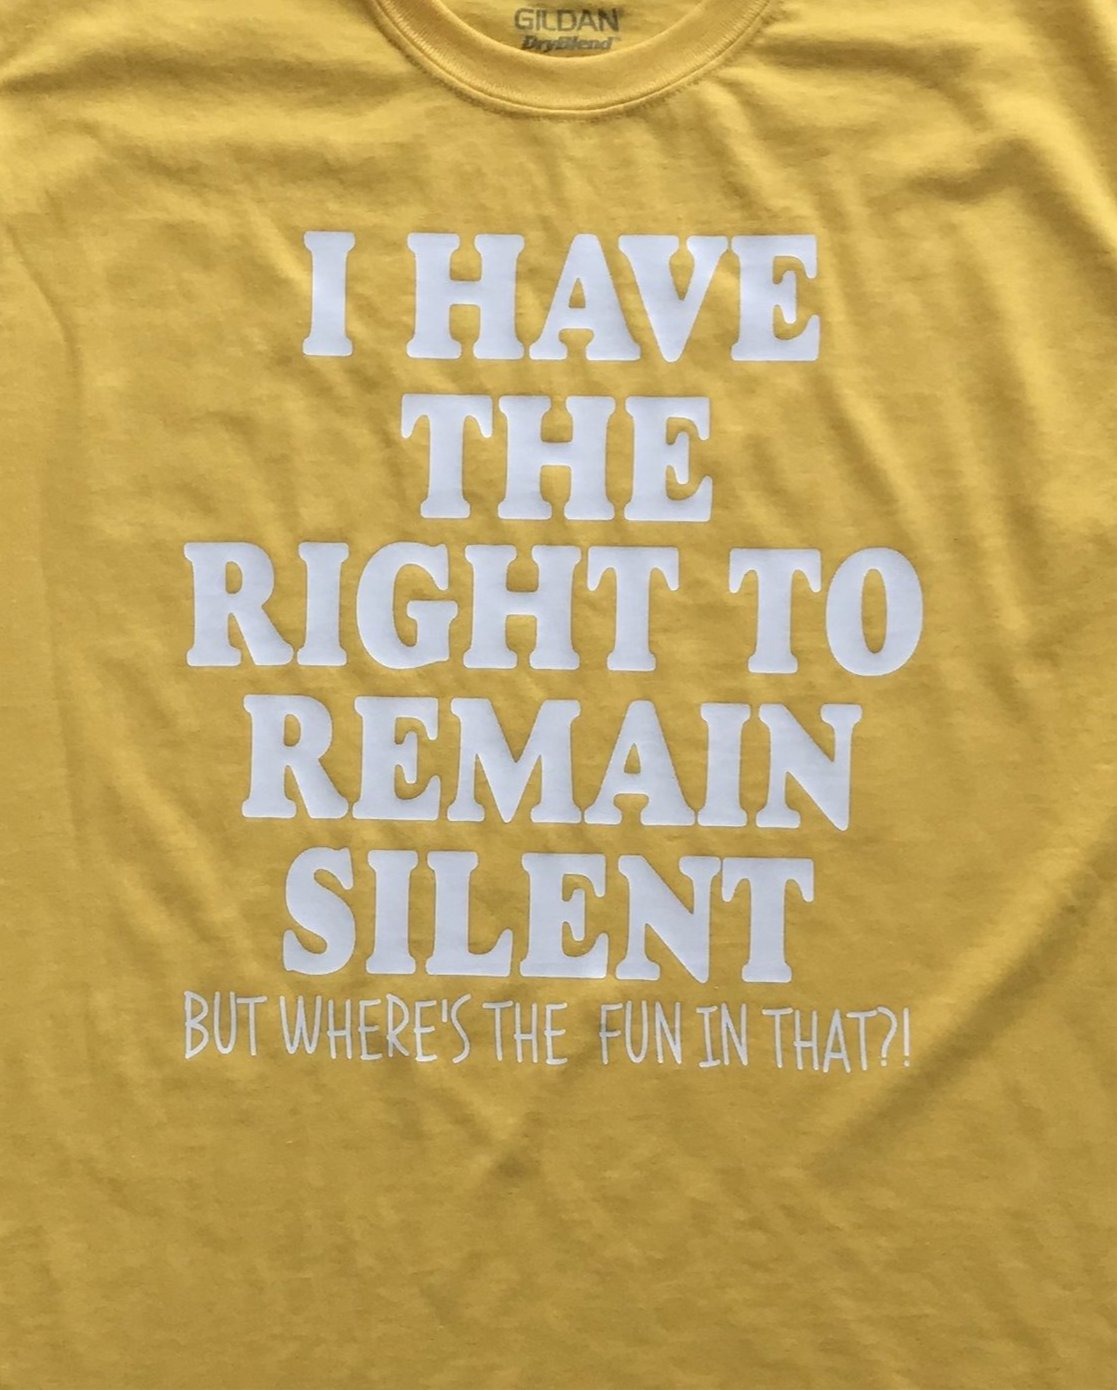 Right to Remain Silent but WHY - Pun Intended